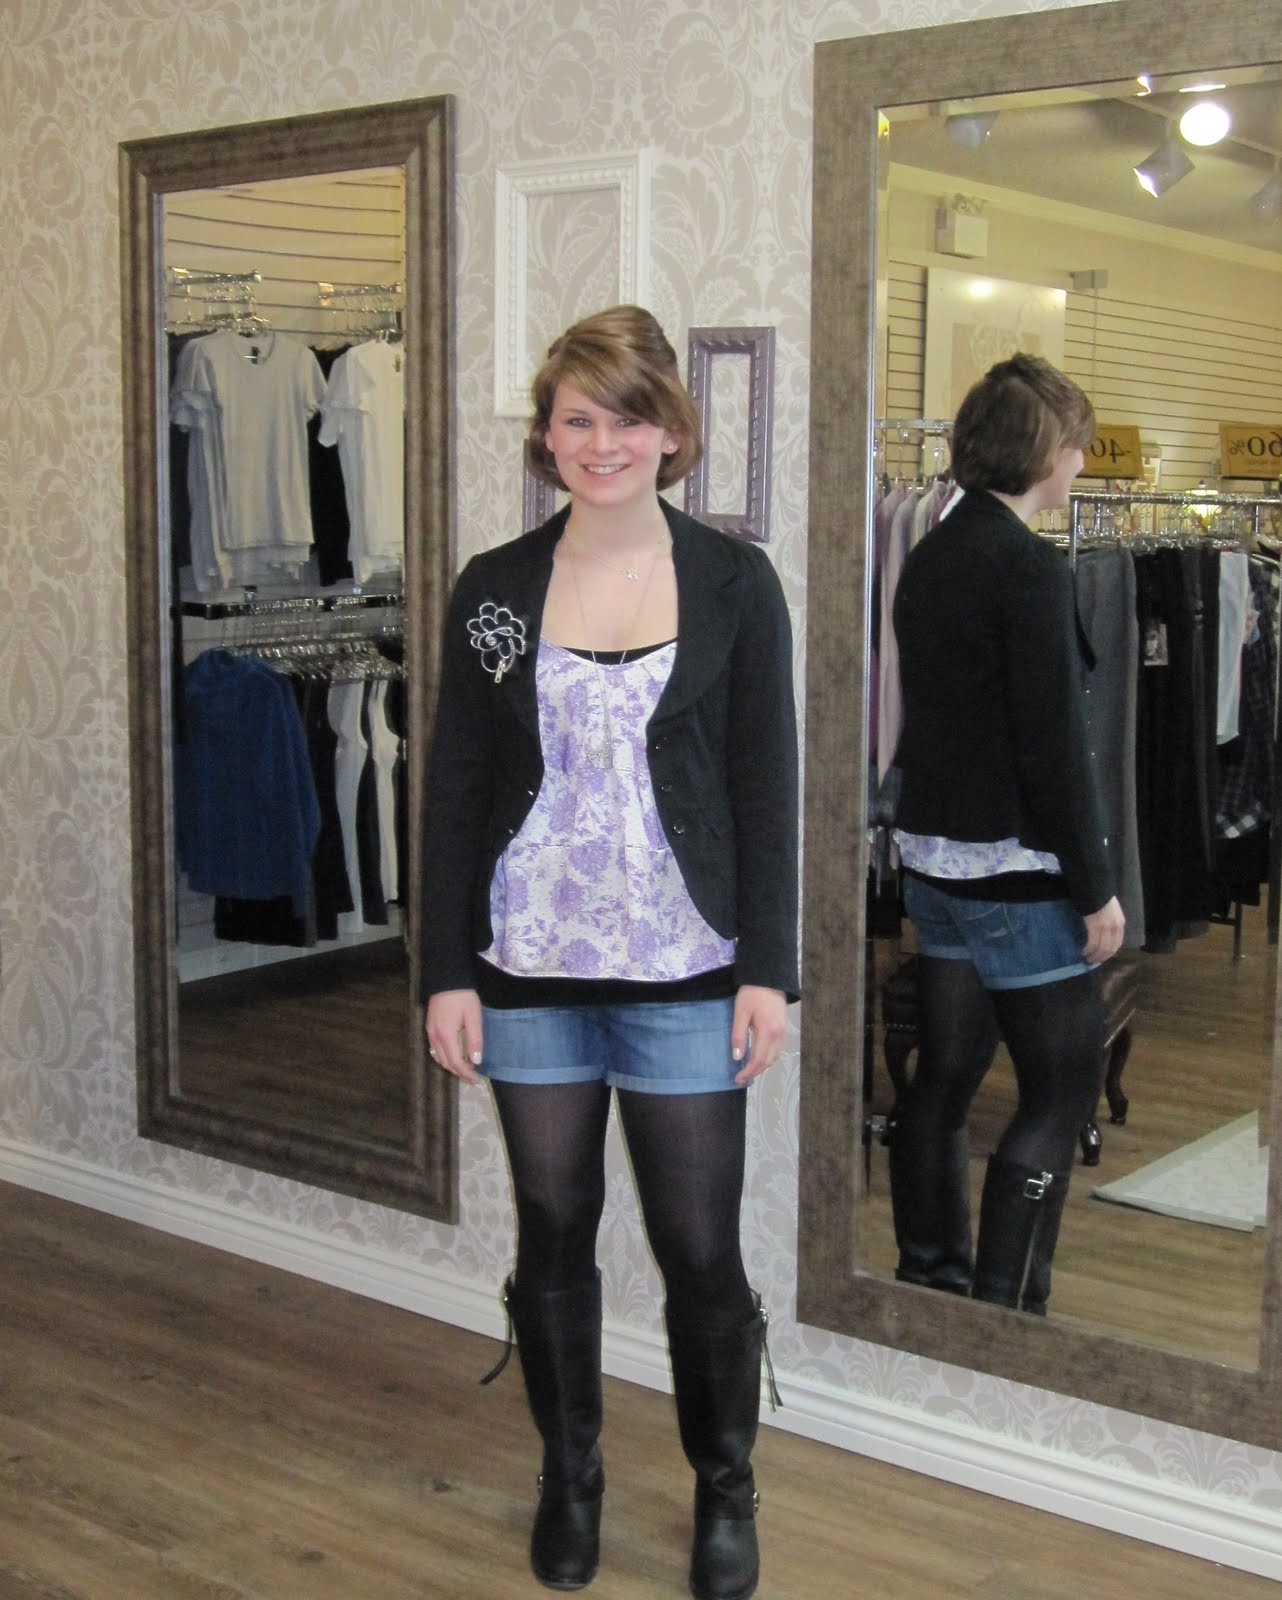 Leggings And Boots http://prestboutique.blogspot.com/2010/04/shorts.html